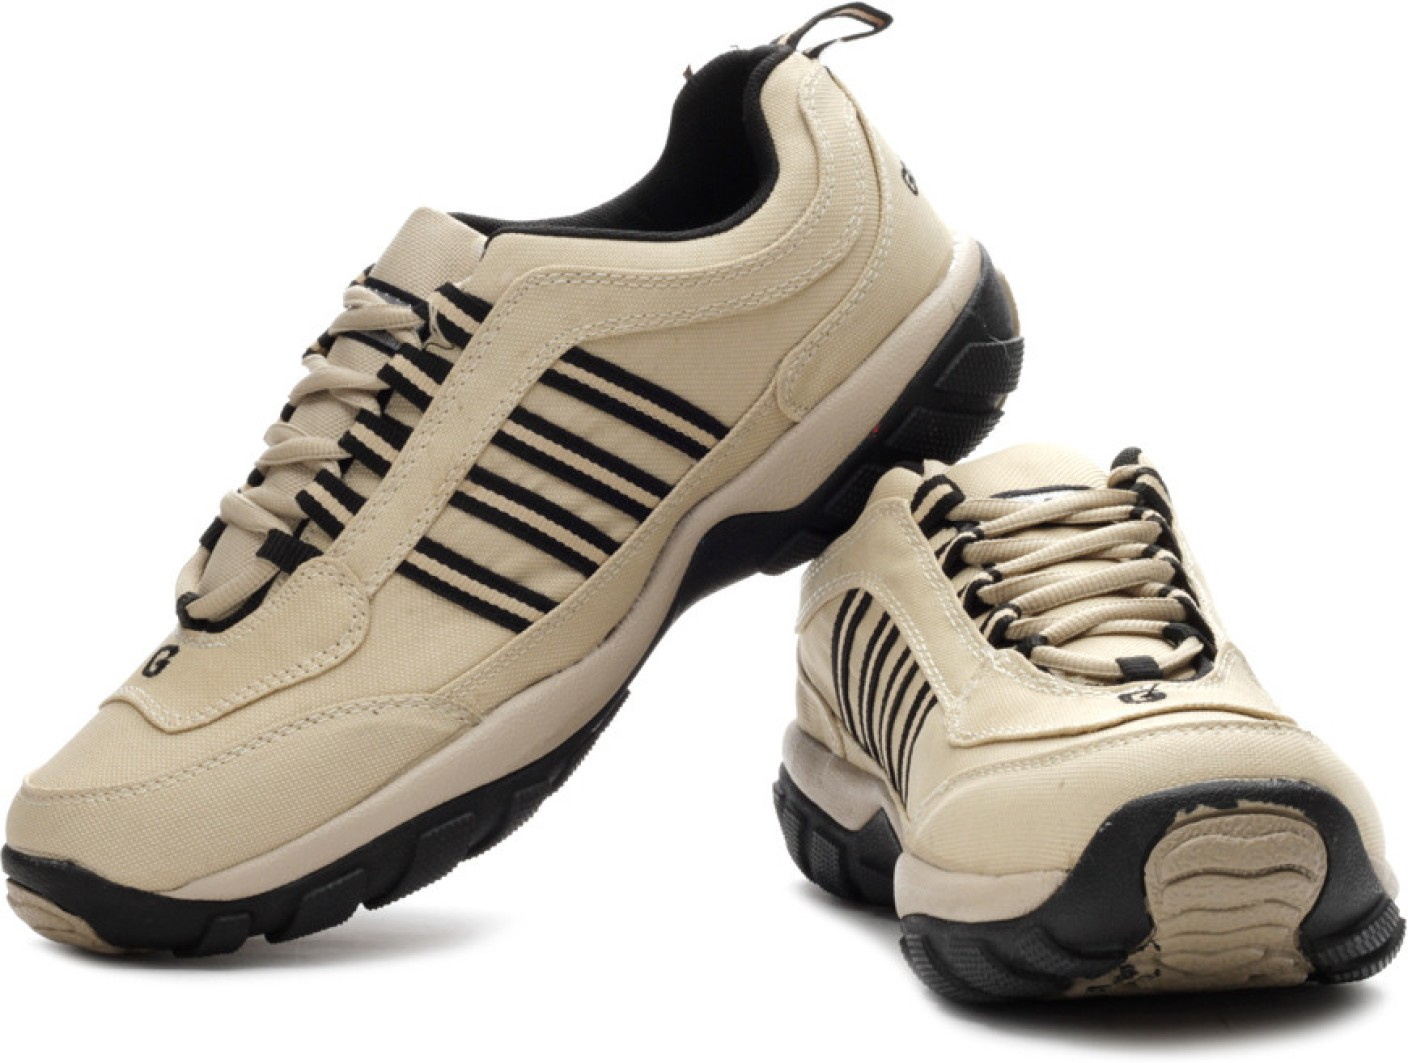 Best Jogging Shoes India